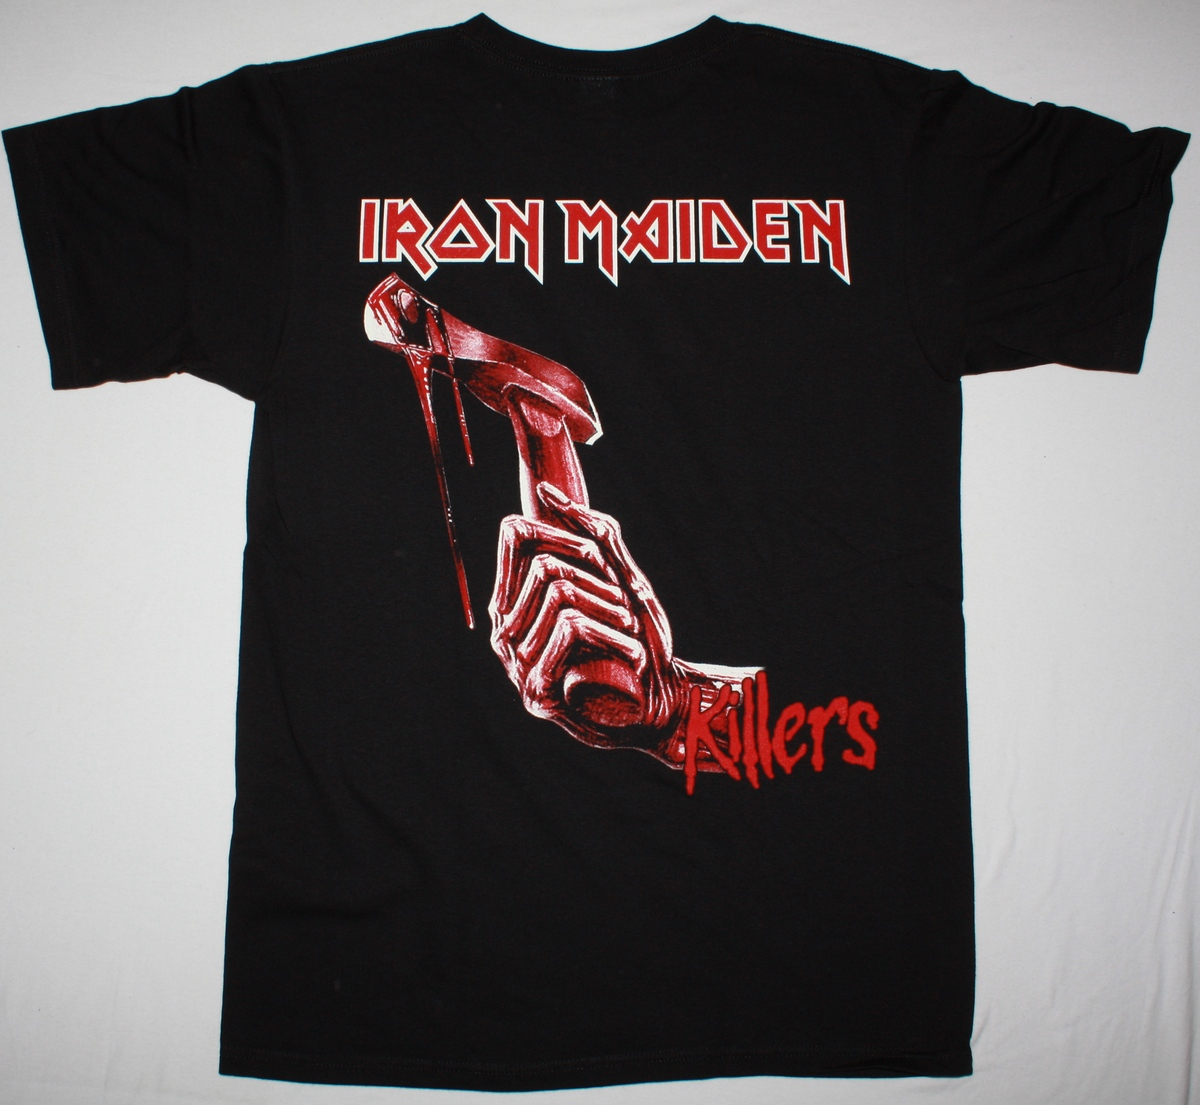 IRON MAIDEN KILLERS 1981 NEW BLACK T-SHIRT